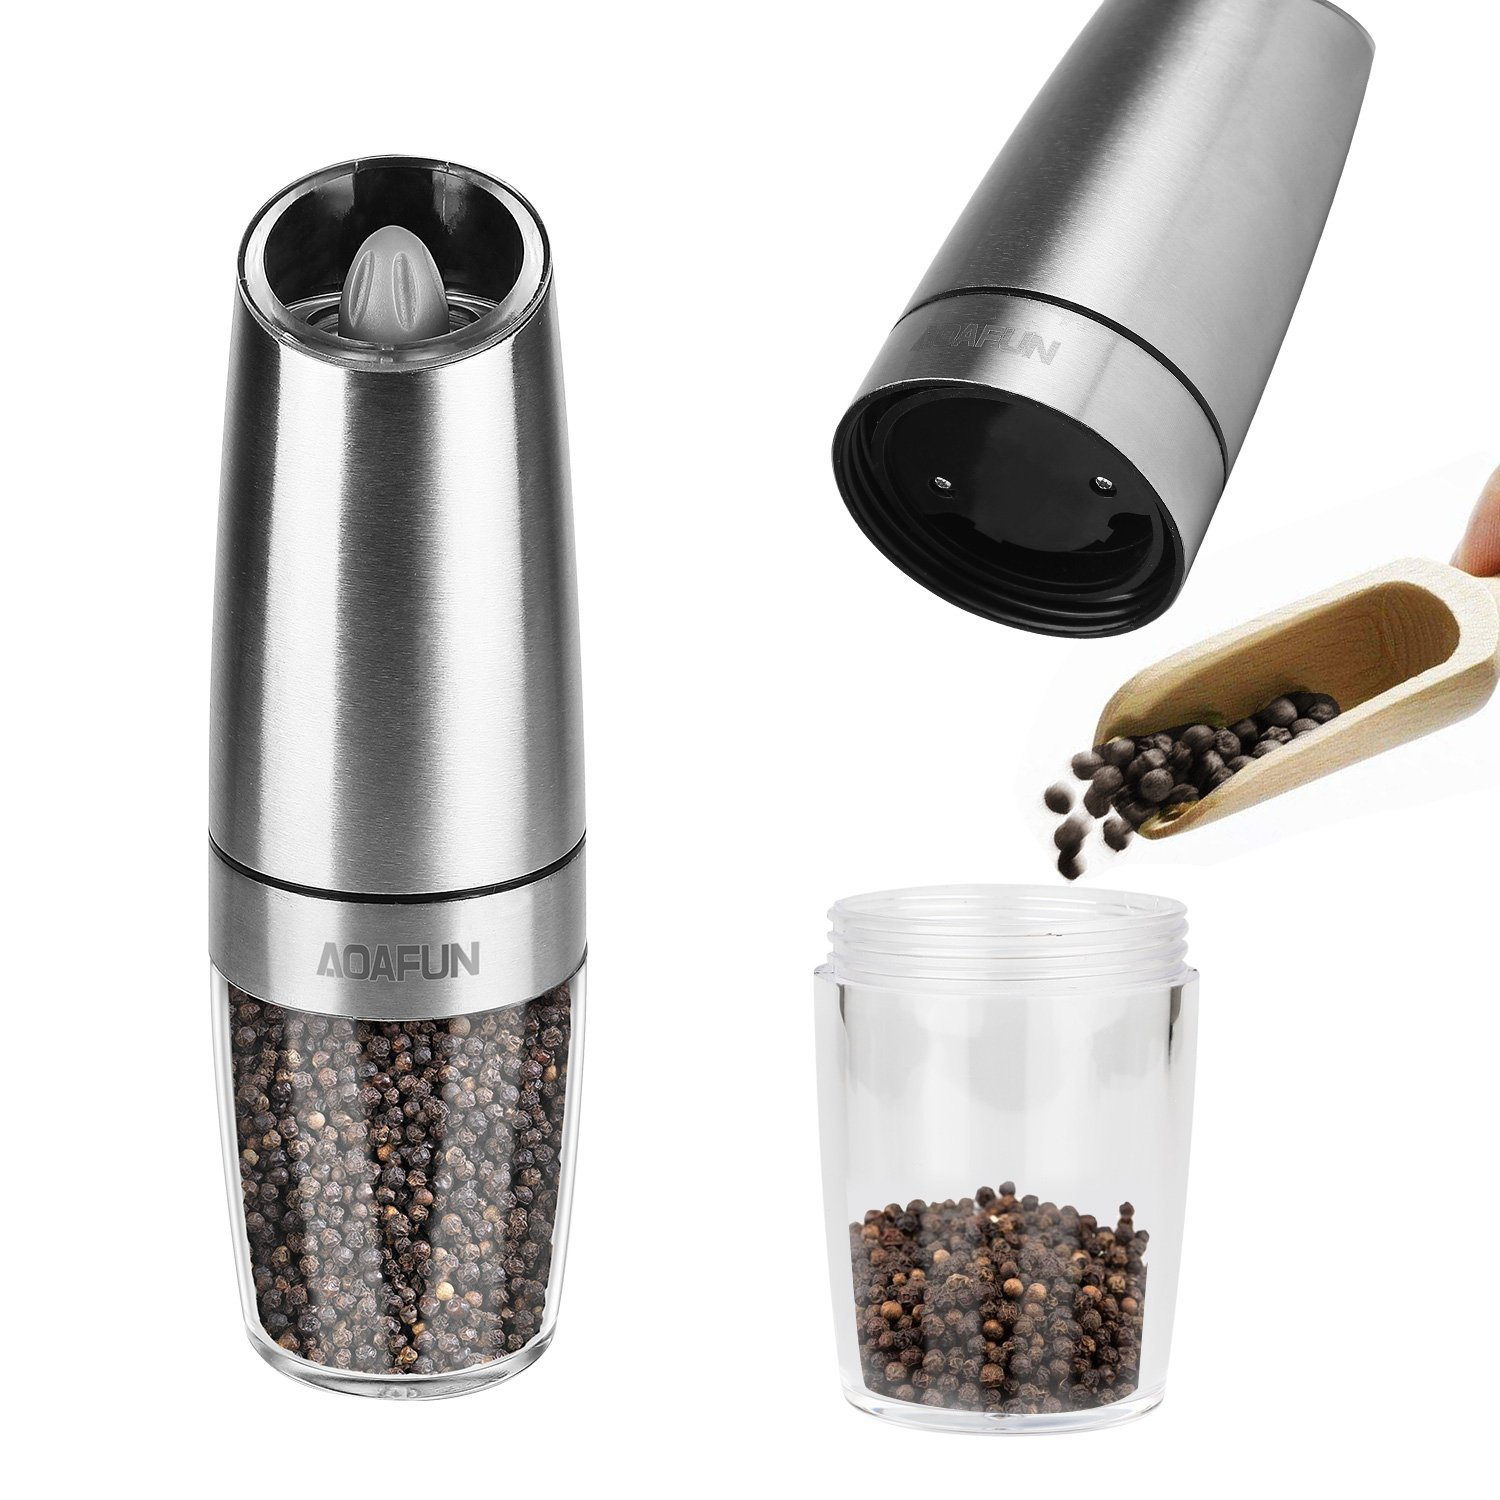 Amazon.com: AOAFUN Electric Salt and Pepper Grinder Mill Set of 2,Battery Operated with LED Light, Adjustable Coarseness,Stainless Steel Body: Home & ...